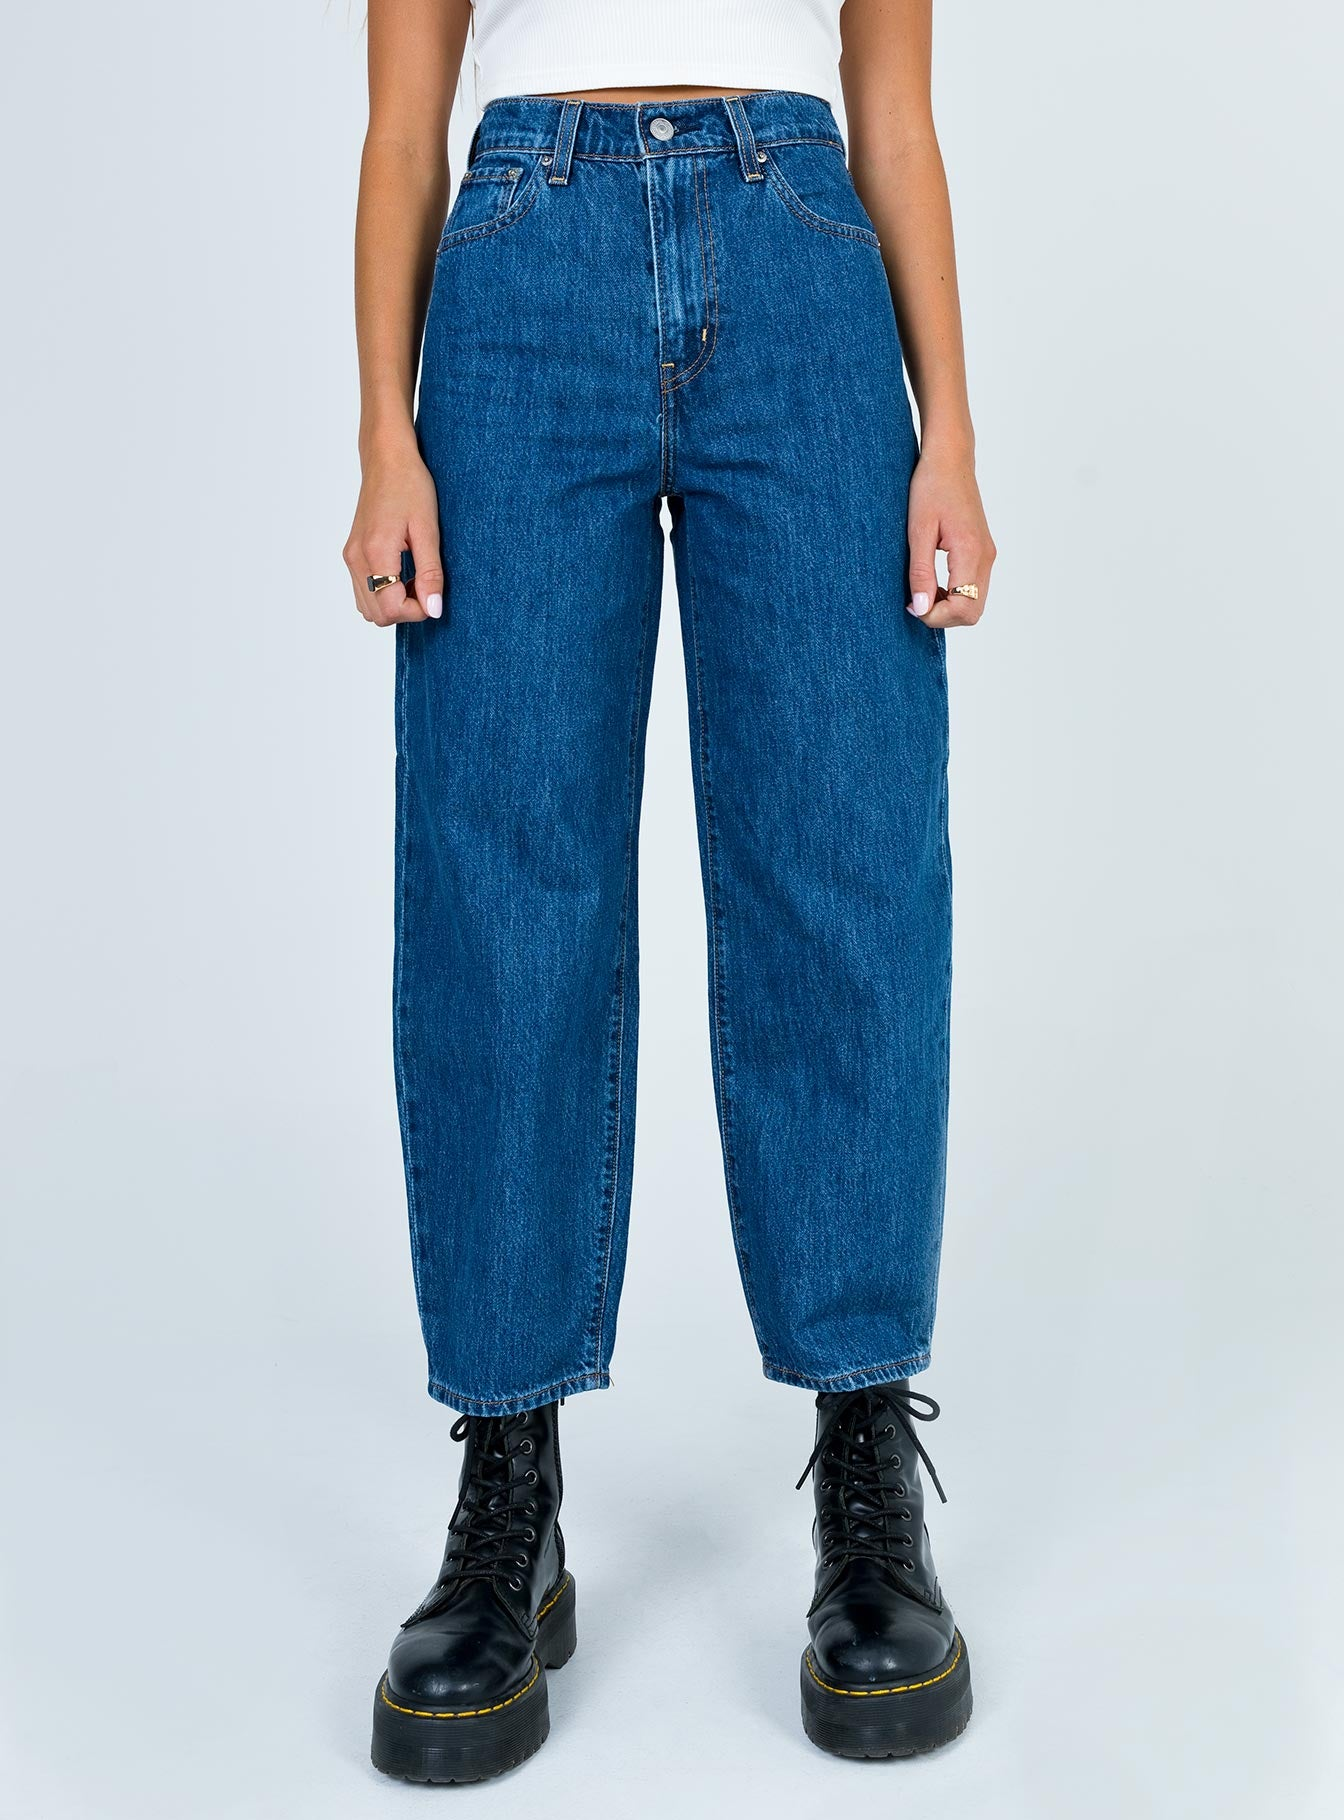 Levi's Balloon Leg Air Head Jeans